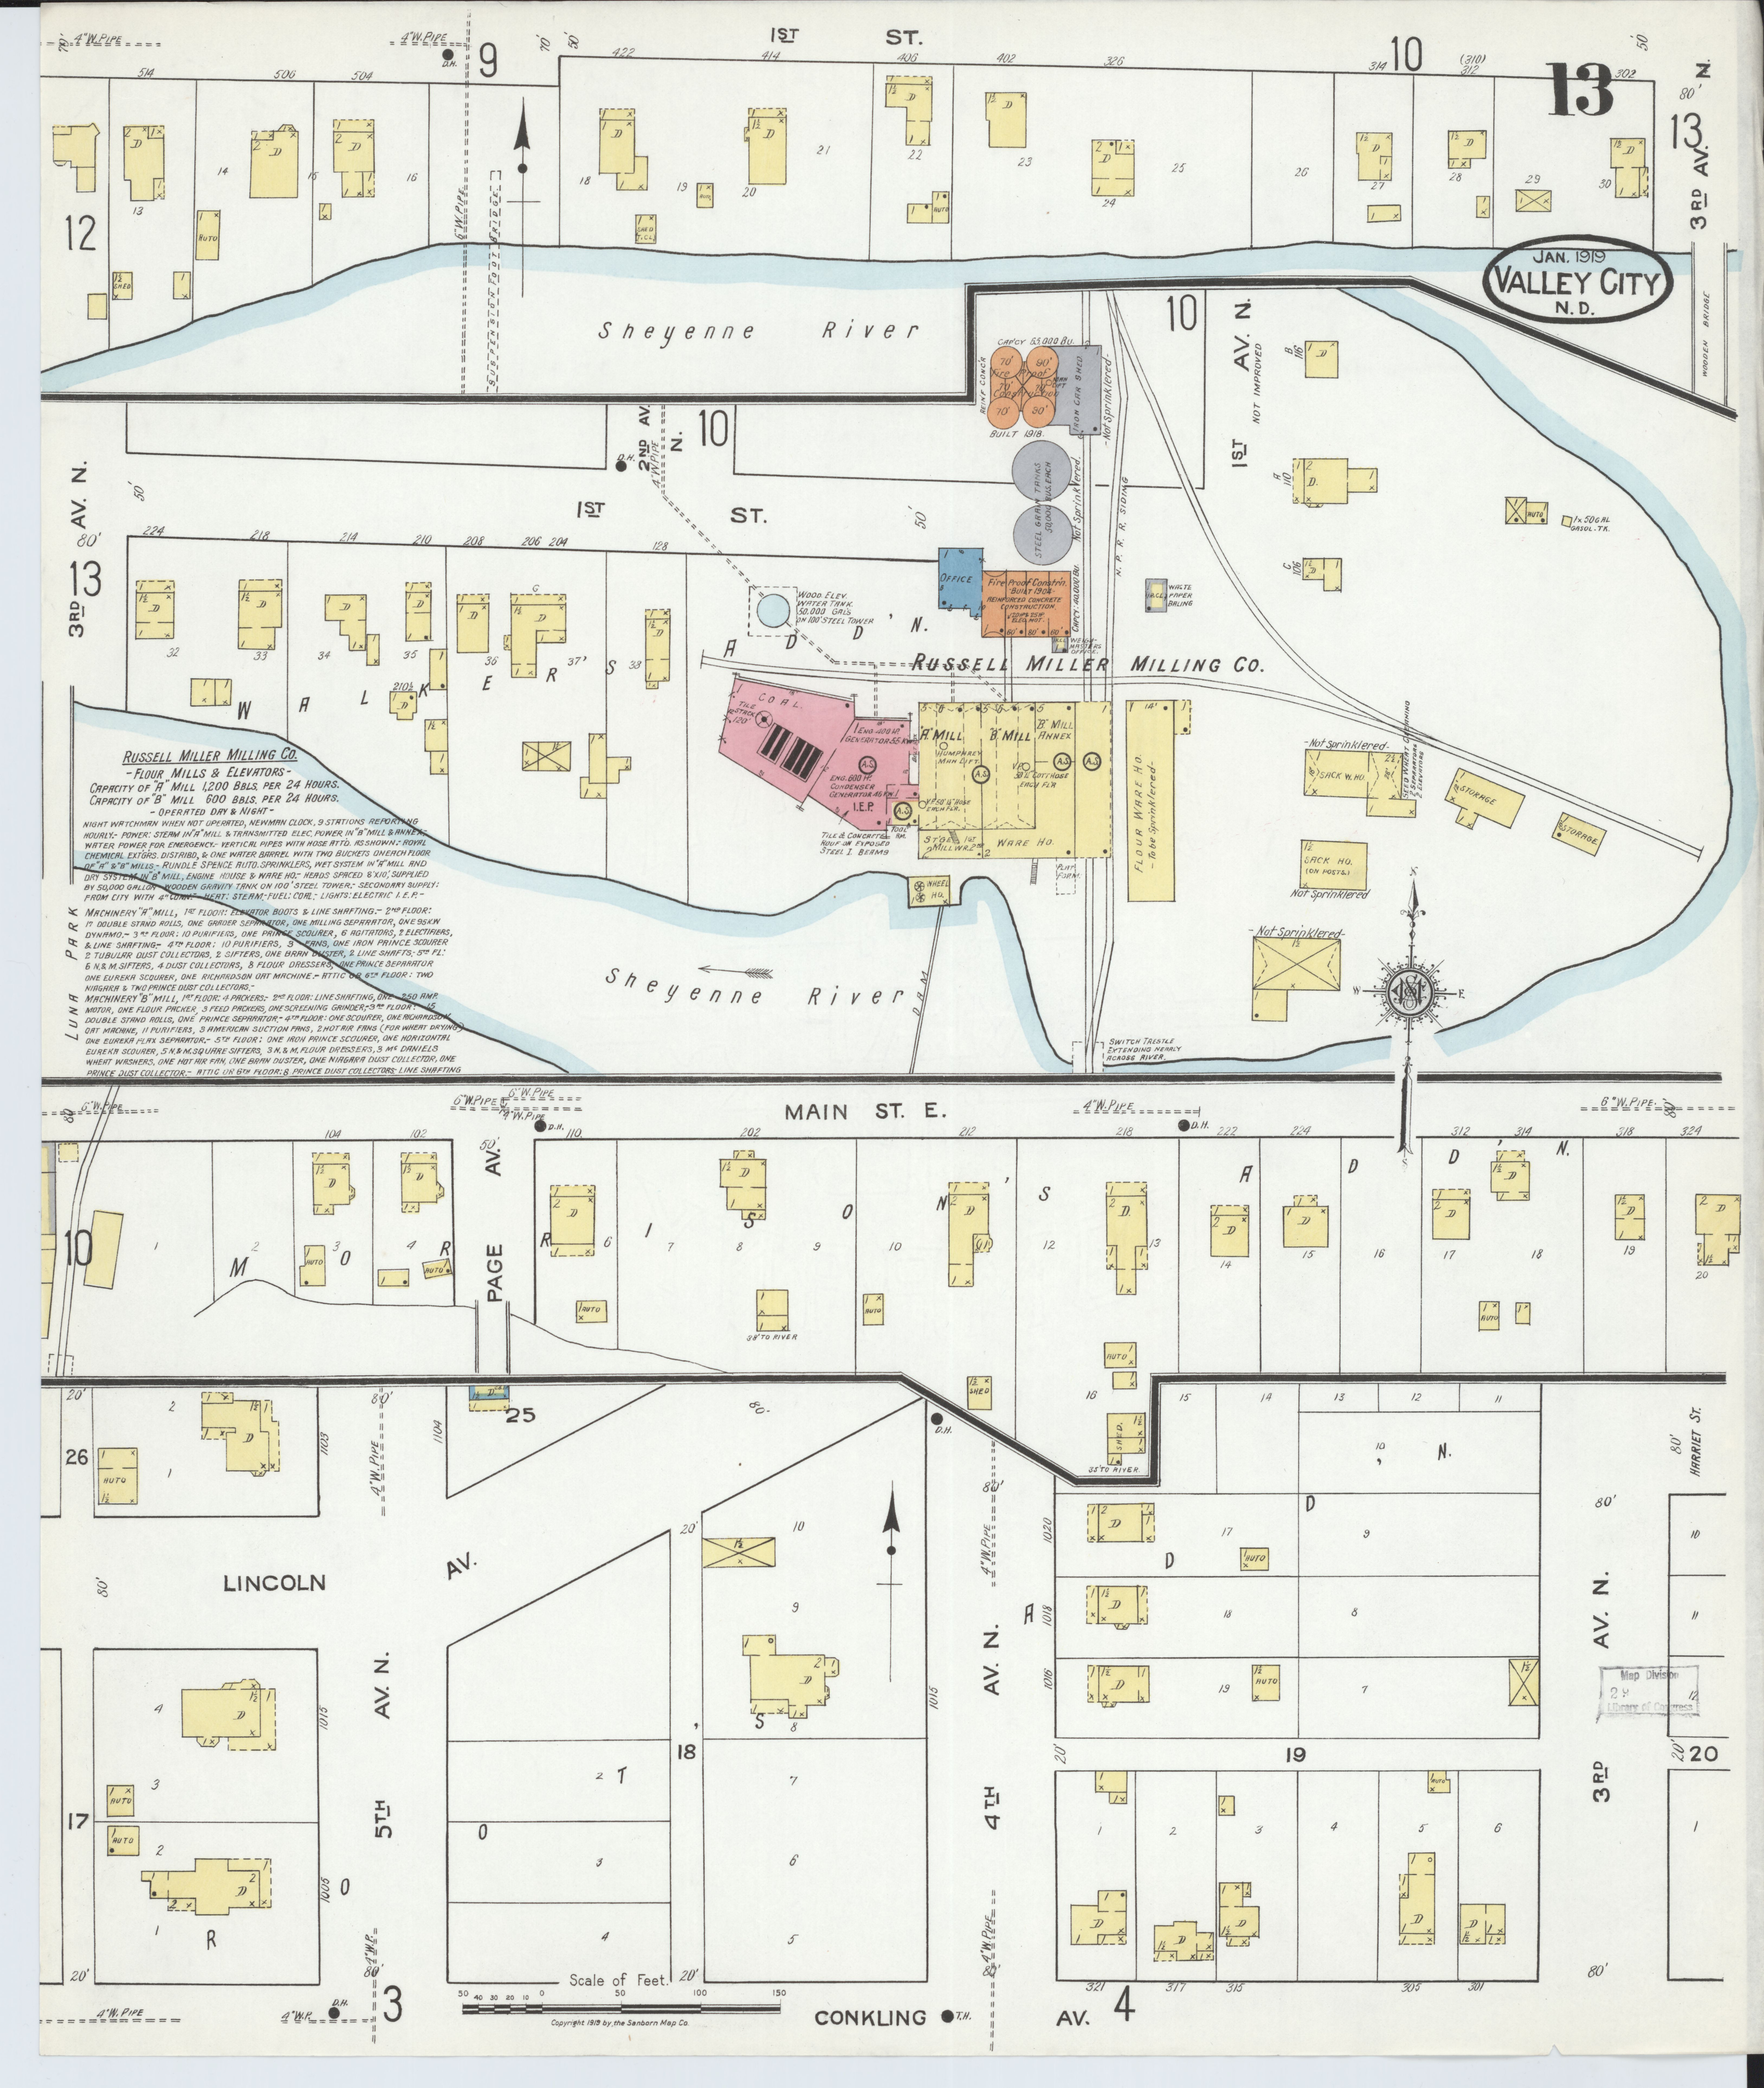 File:Sanborn Fire Insurance Map from Valley City, Barnes ... on map of paul's valley city, map of cities of the valley sun, taylor city of north dakota,